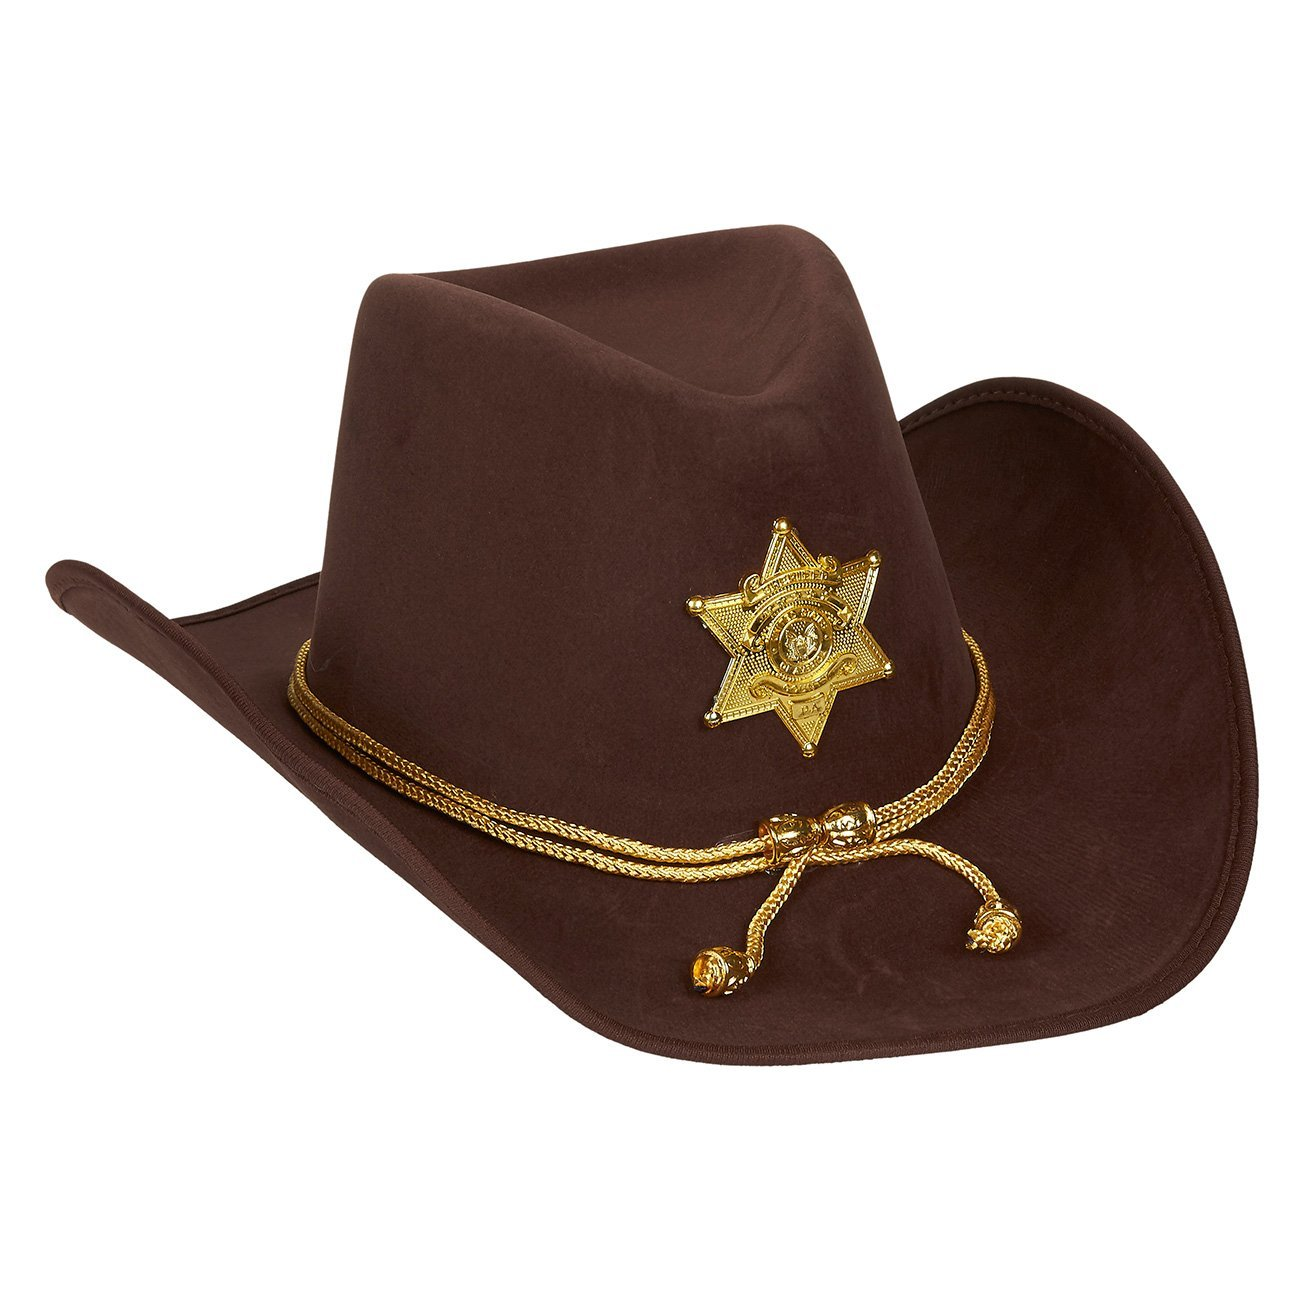 Adult White Felt Western Sheriff Cowboy Cowgirl Hat Costume Accessory New